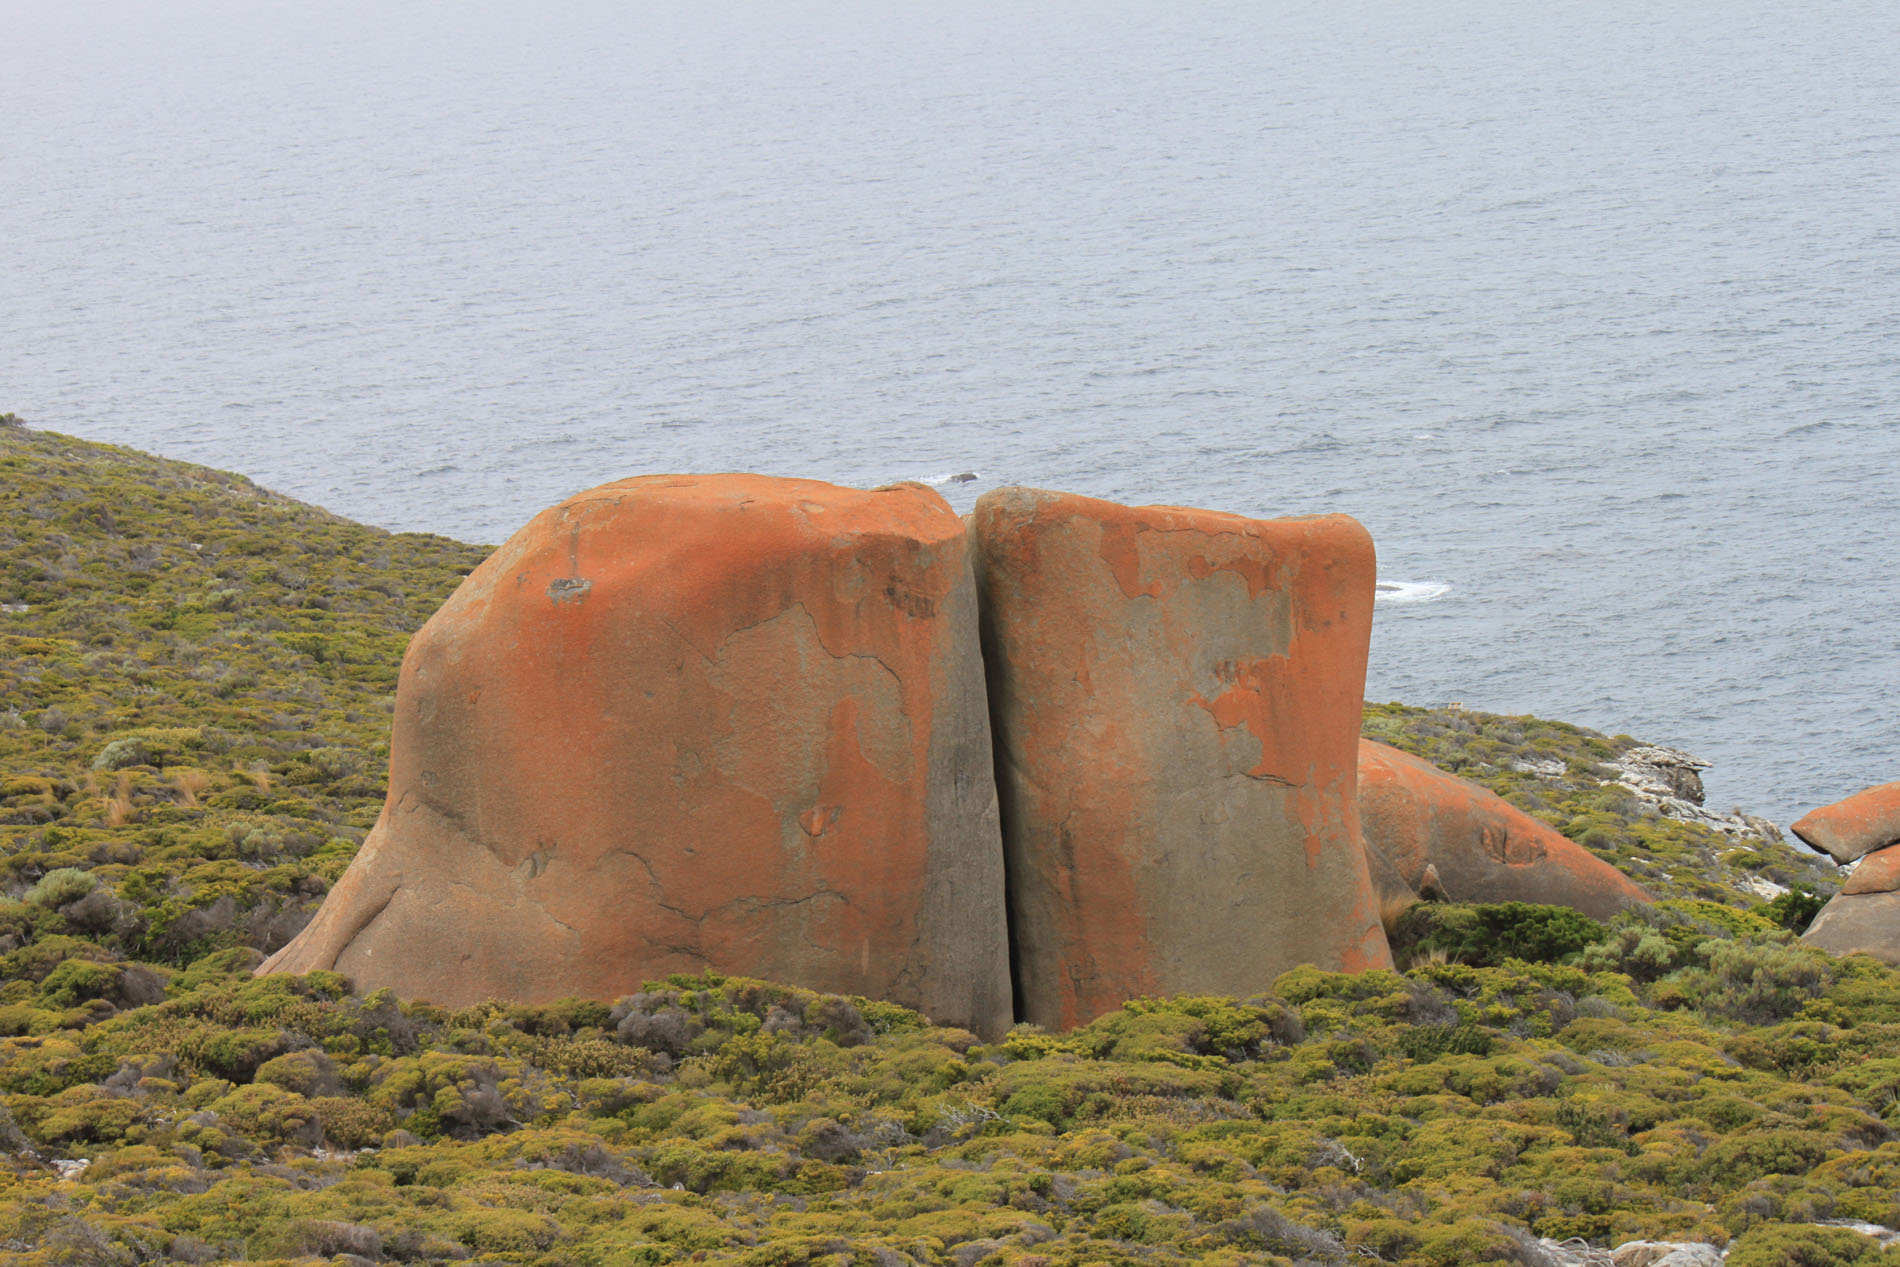 Remarkable Rocks, Kangaroo Island